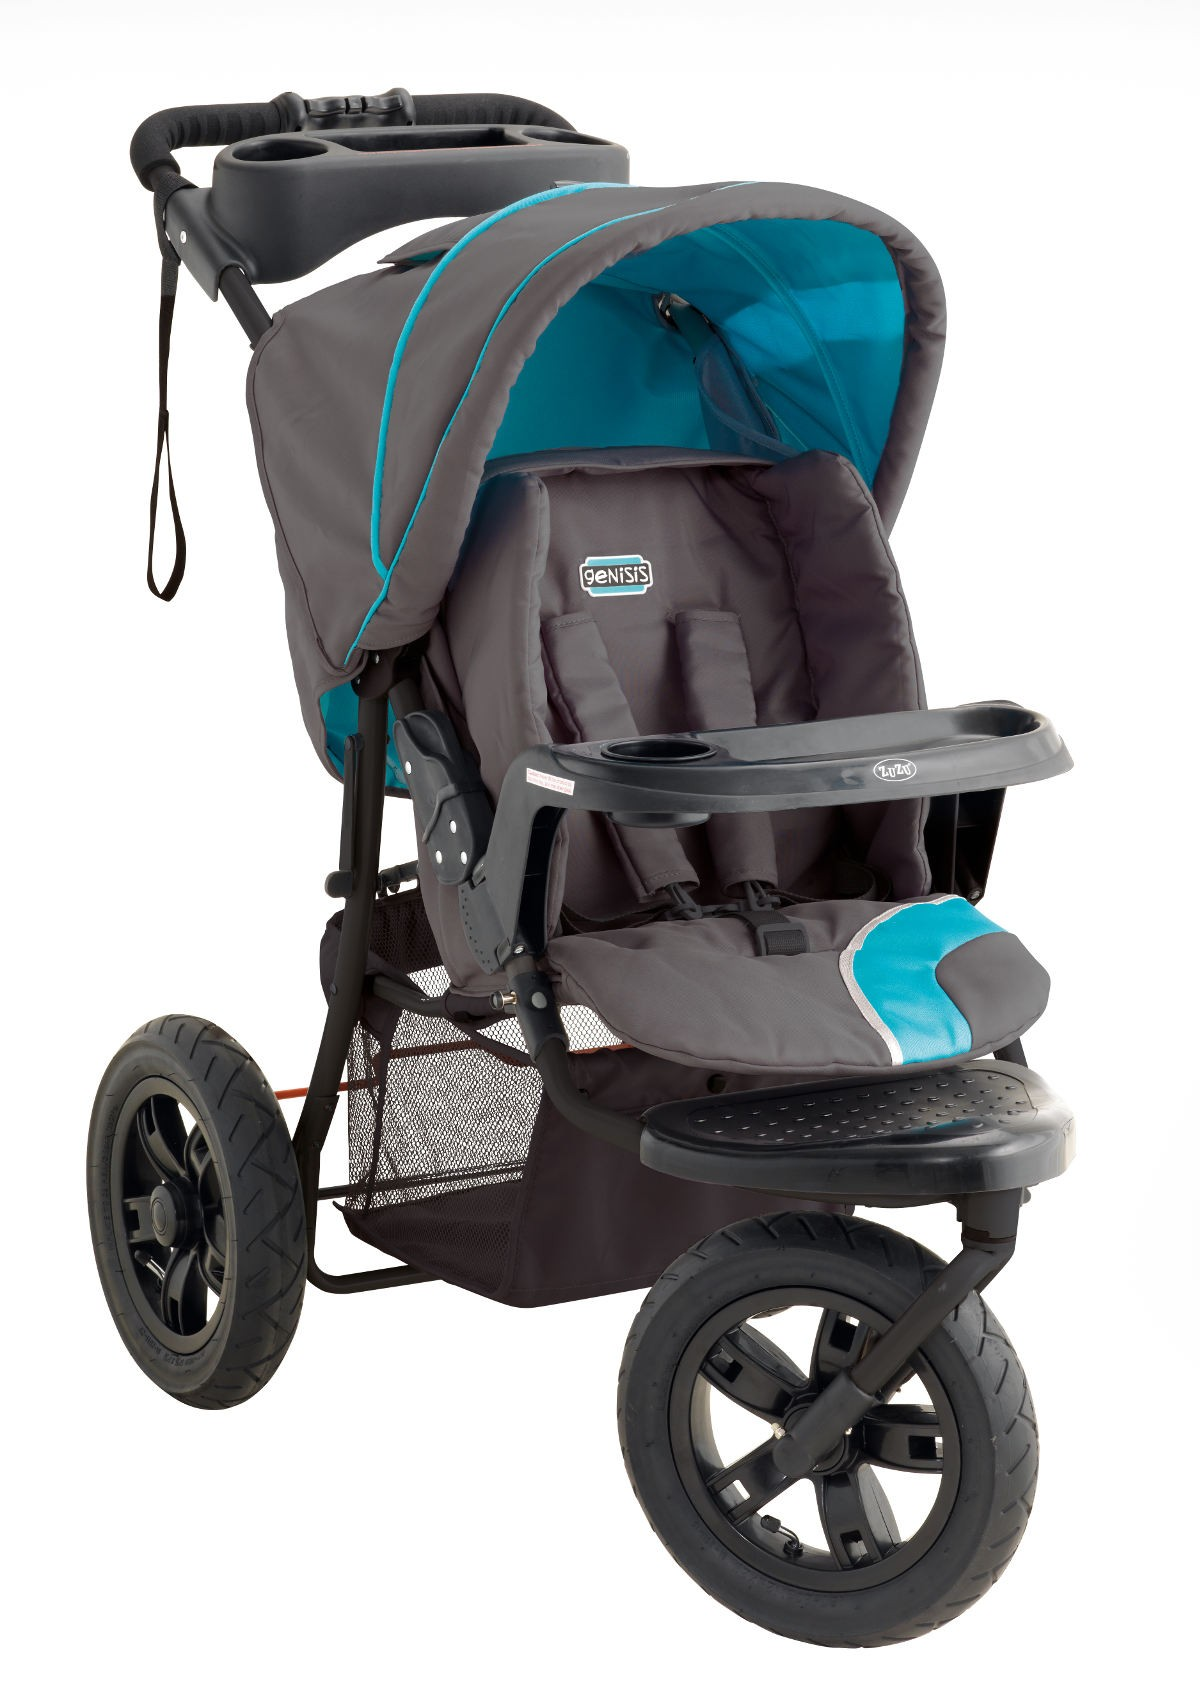 Getting Best Baby Budget on safety 1st stroller